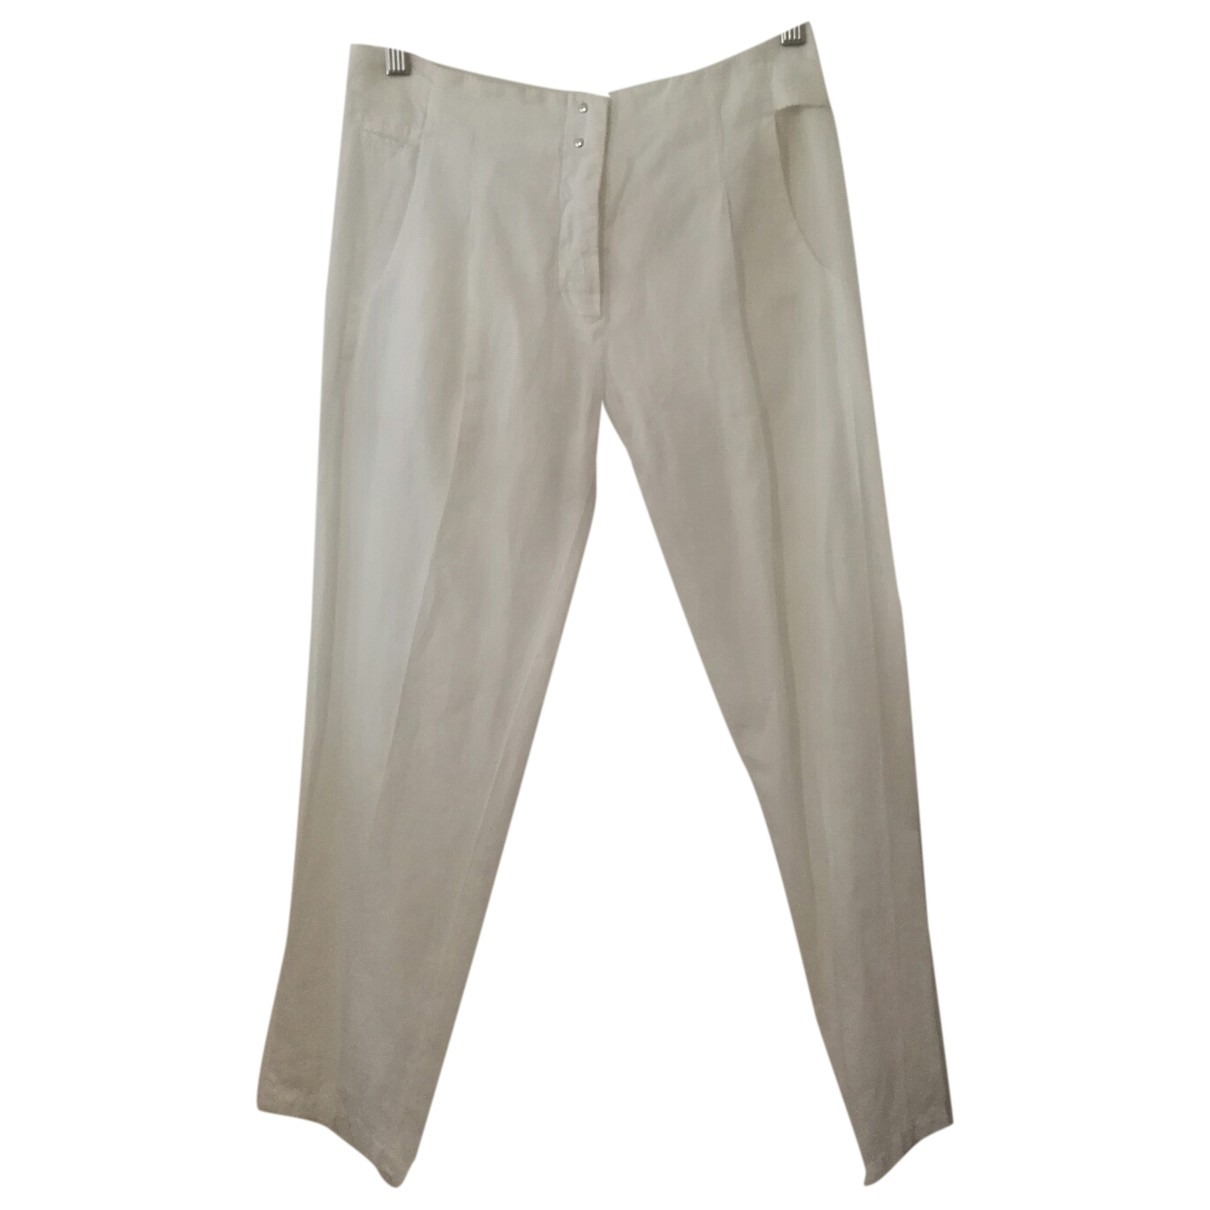 Mm6 \N White Cotton Trousers for Women 38 IT